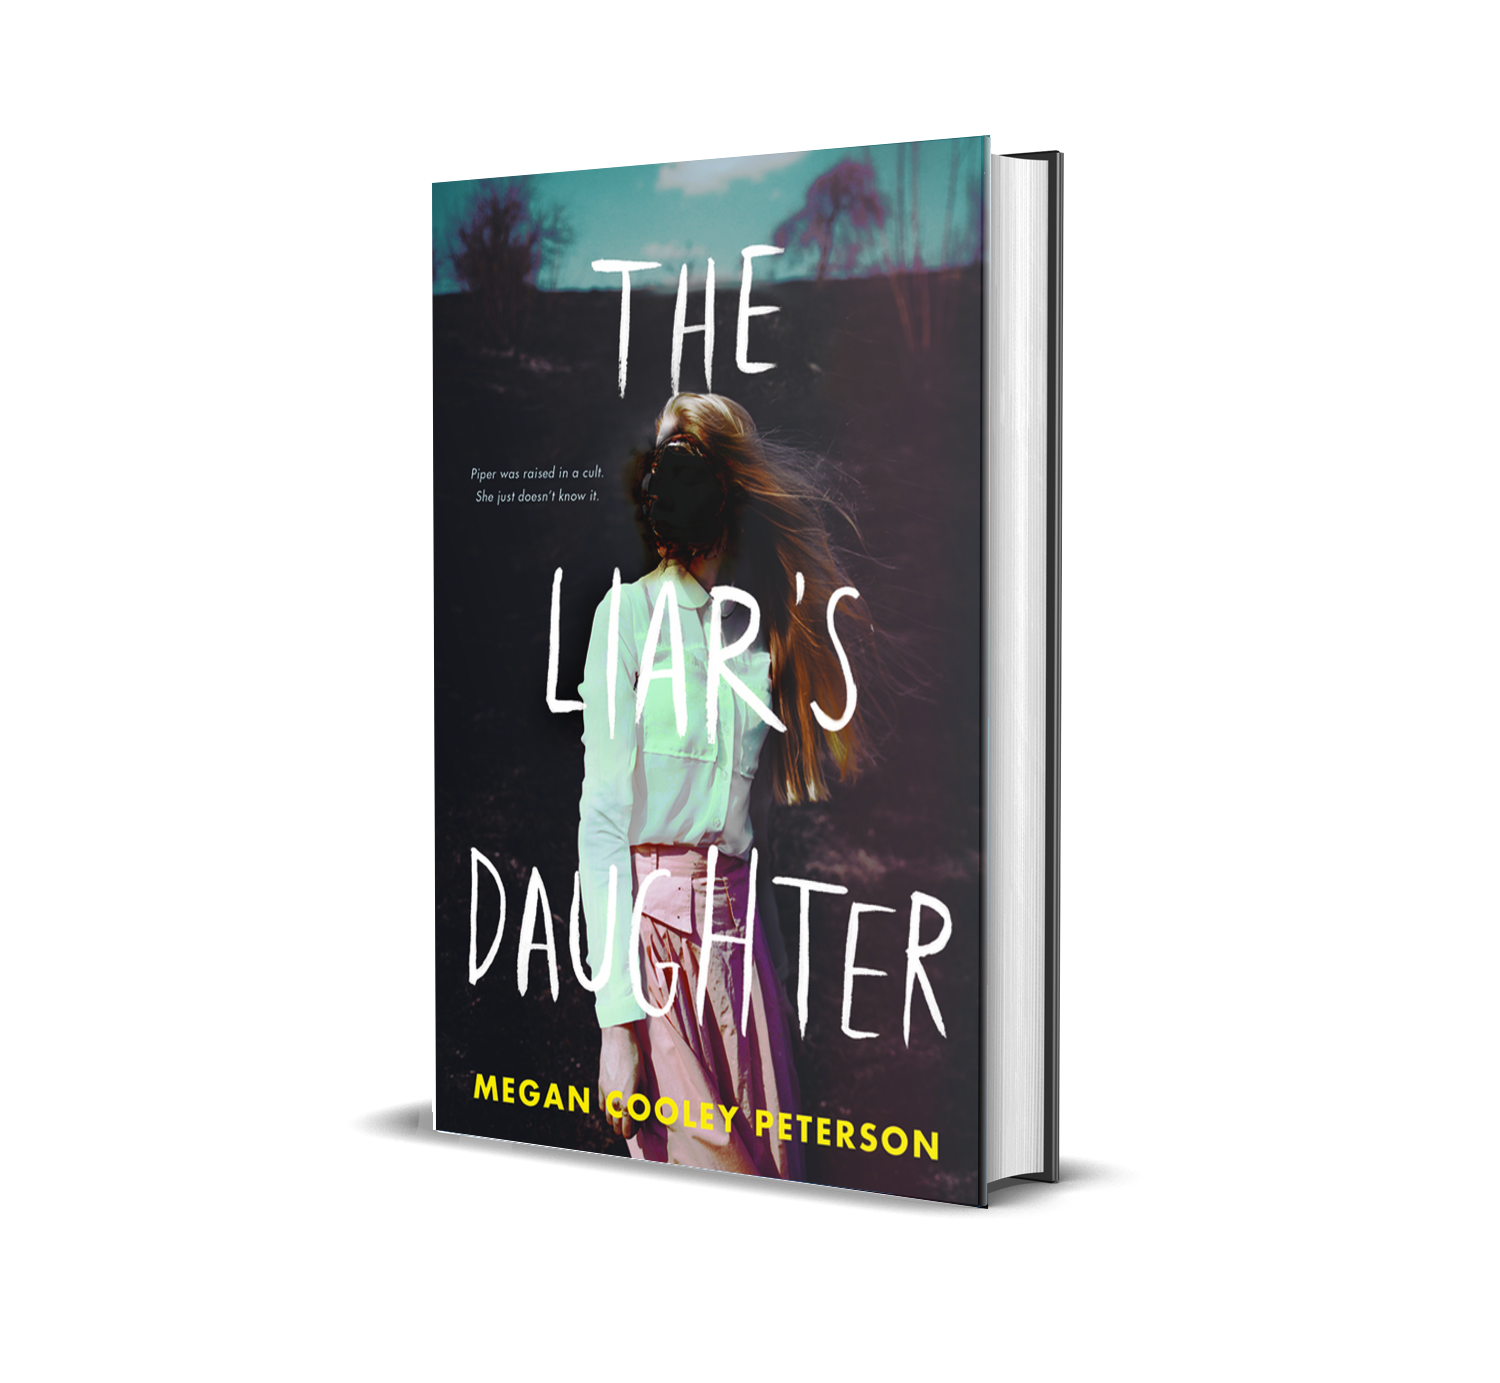 "The liar's daughter - In stores and online now!""A rich, layered, and unflinching narrative of love, loss, and the struggle to become whole once again."